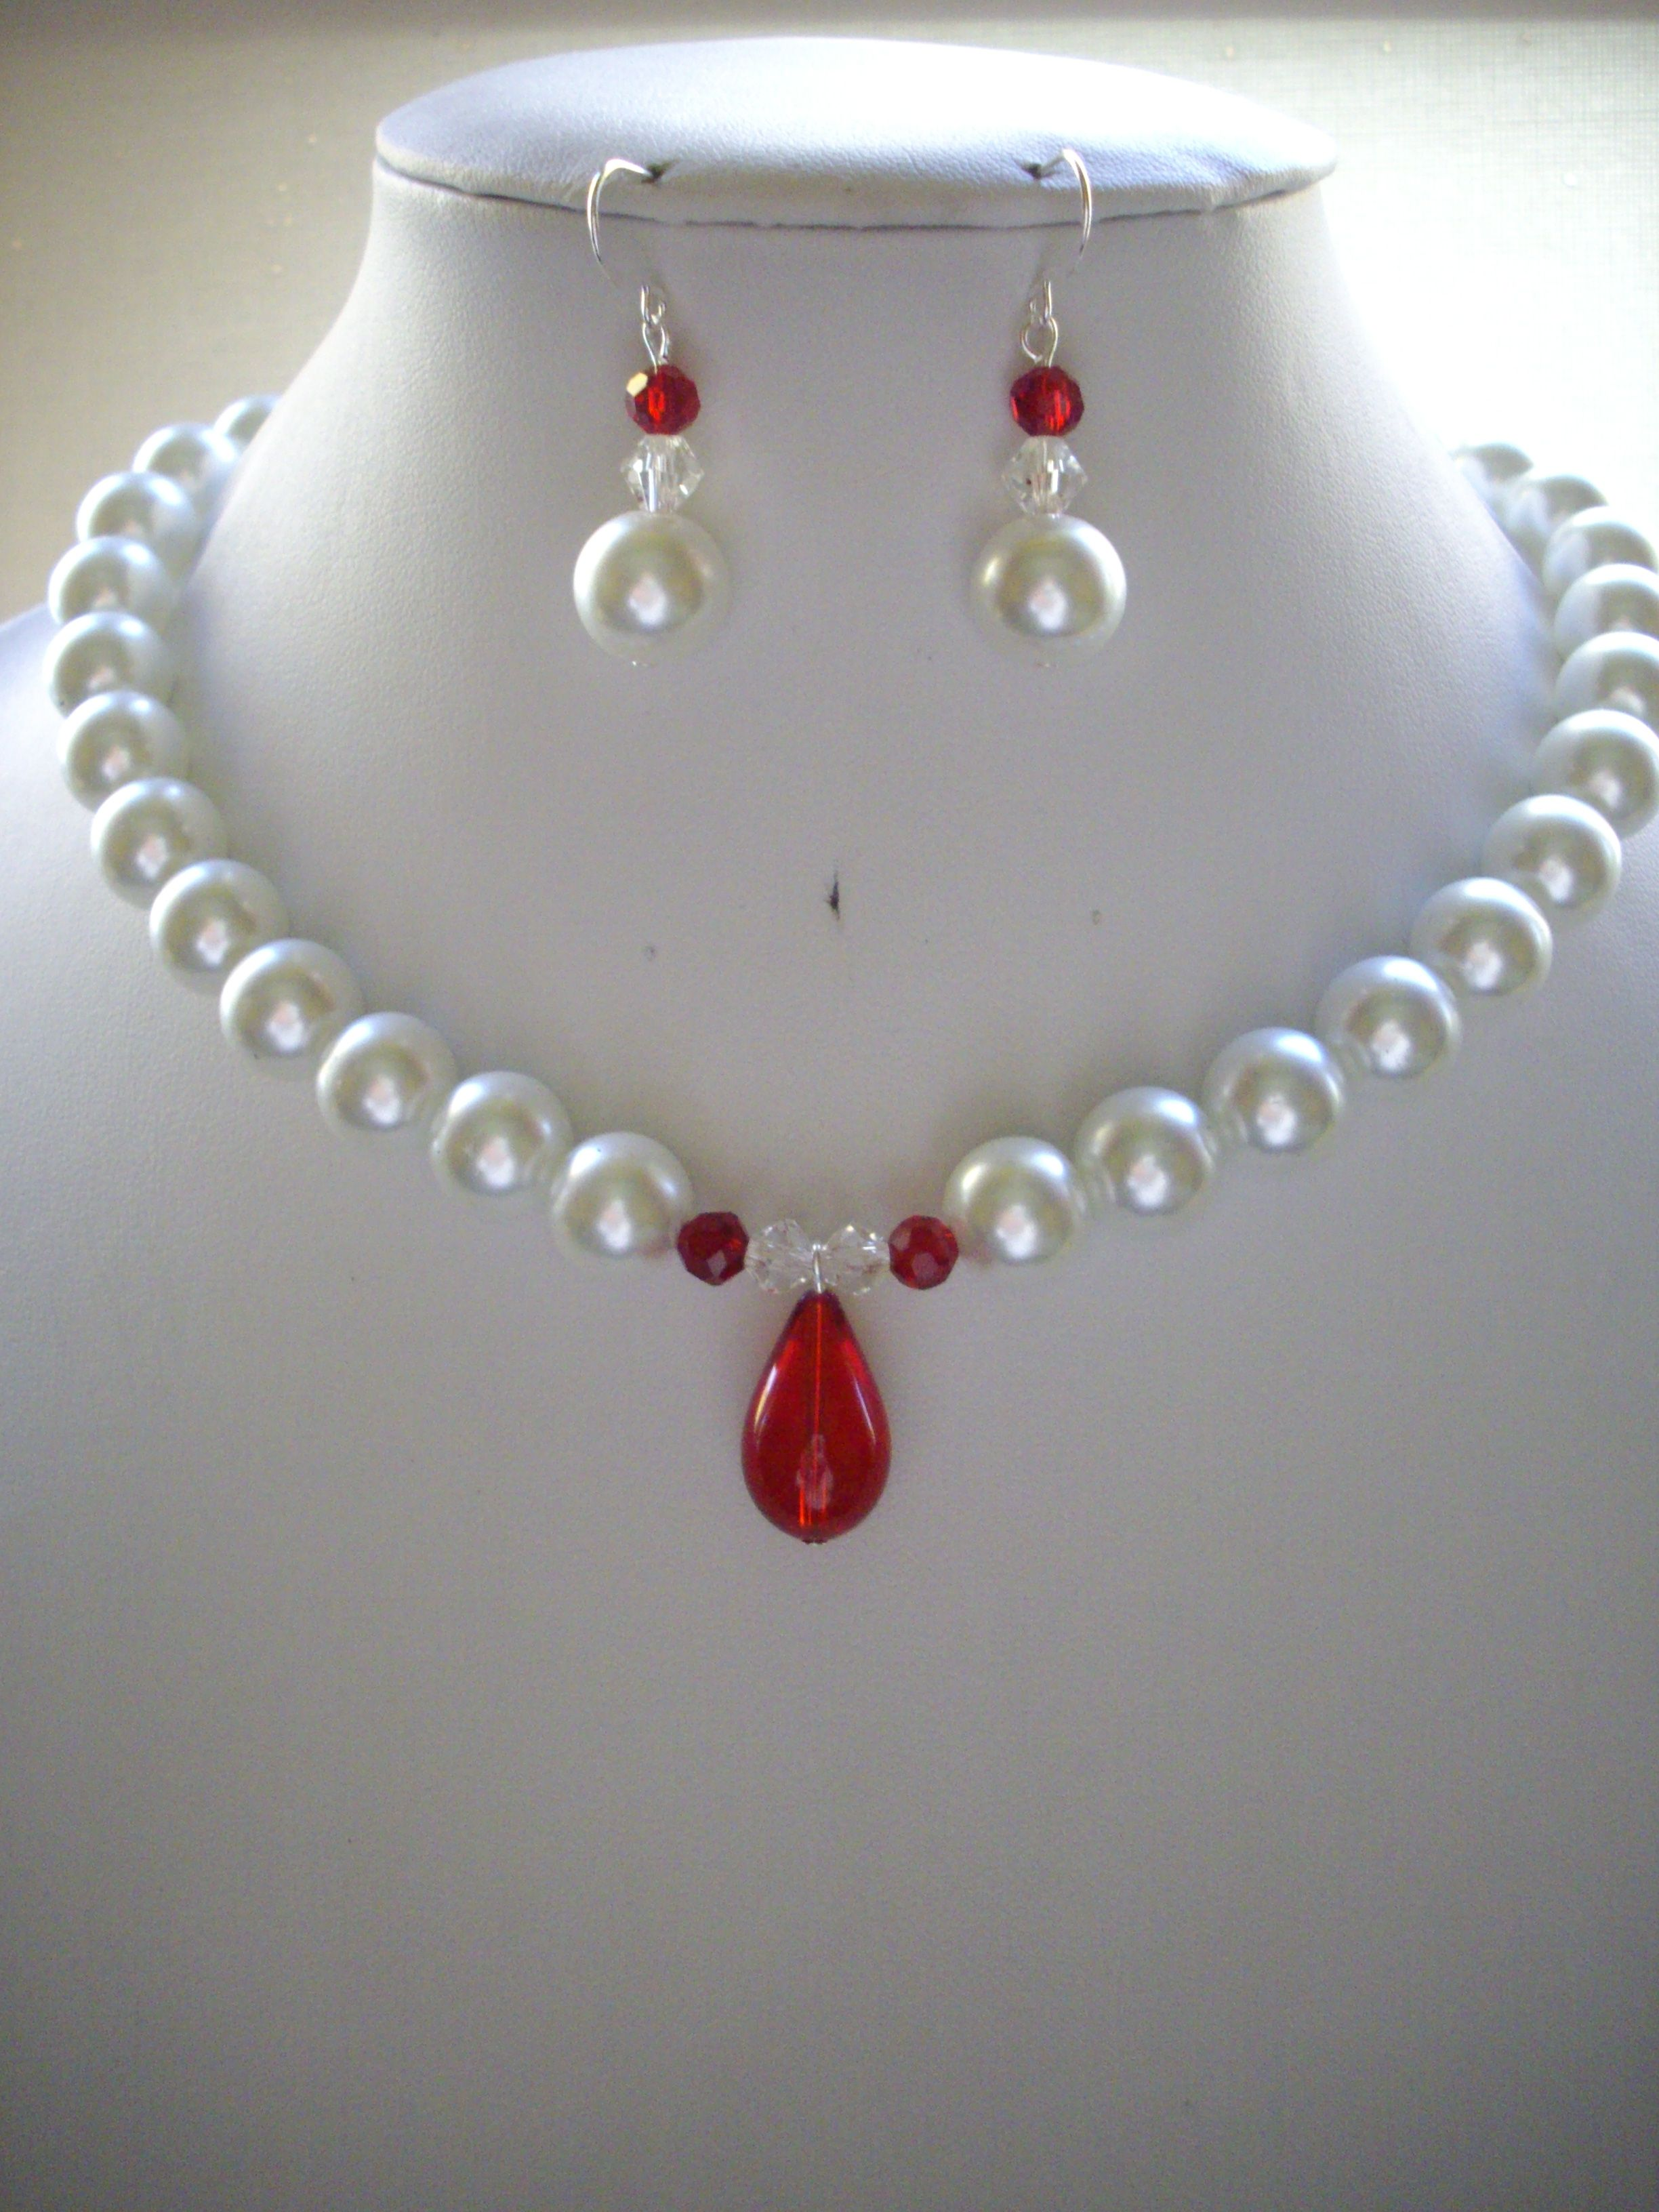 White pearl necklace with red crystals and red glass pendant white pearl necklace with red crystals and red glass pendant 5500 aloadofball Choice Image